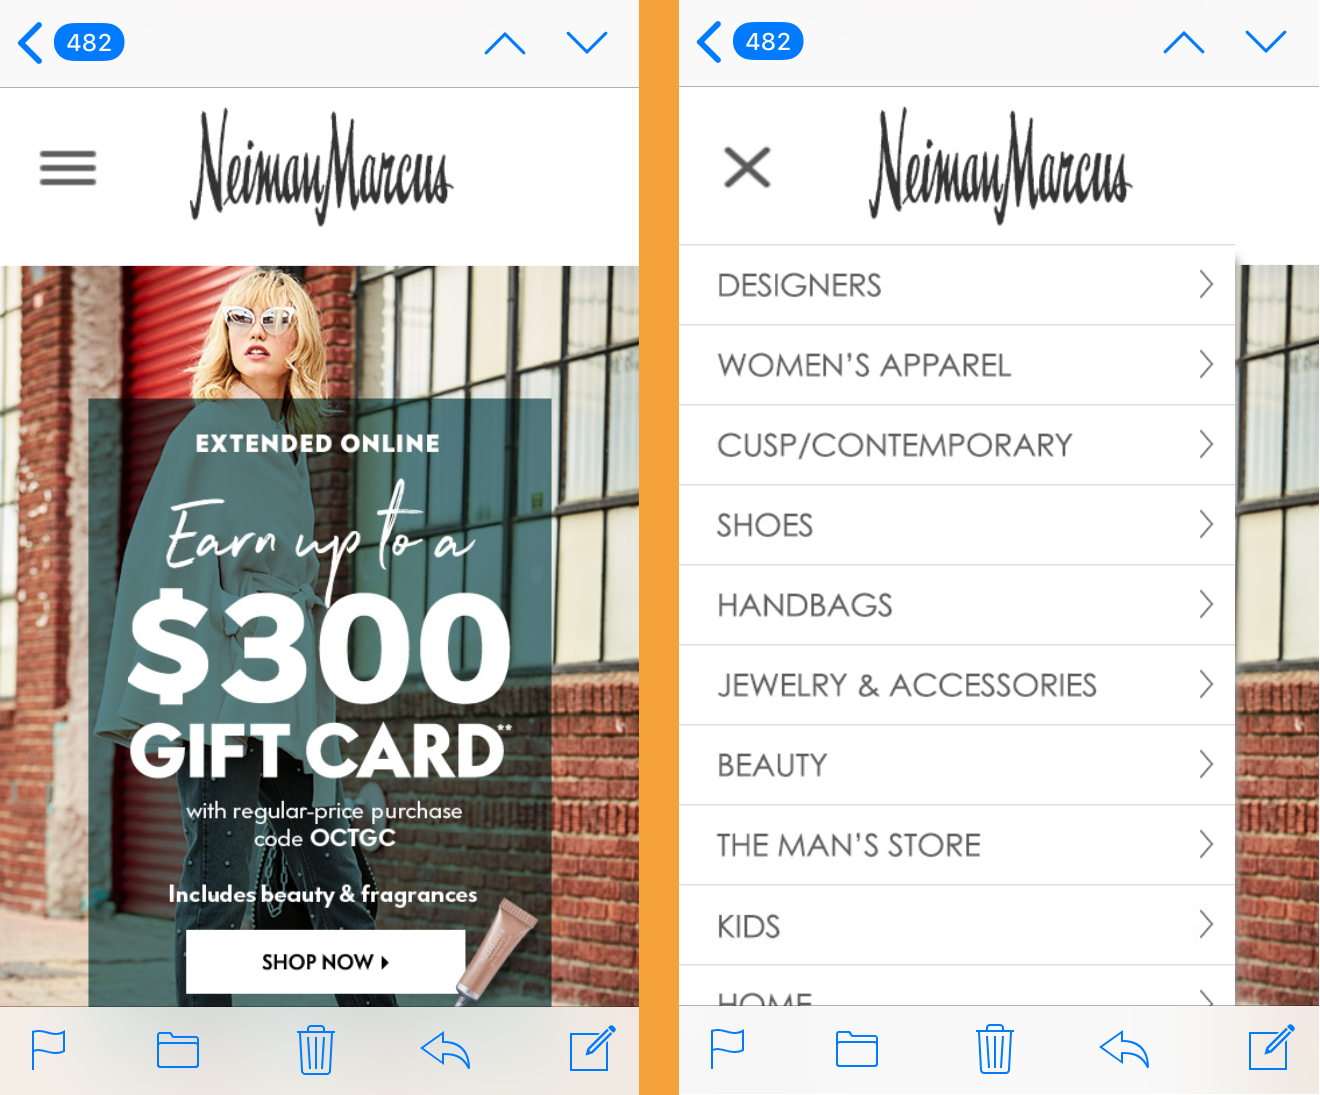 interactive email from Neiman Marcus